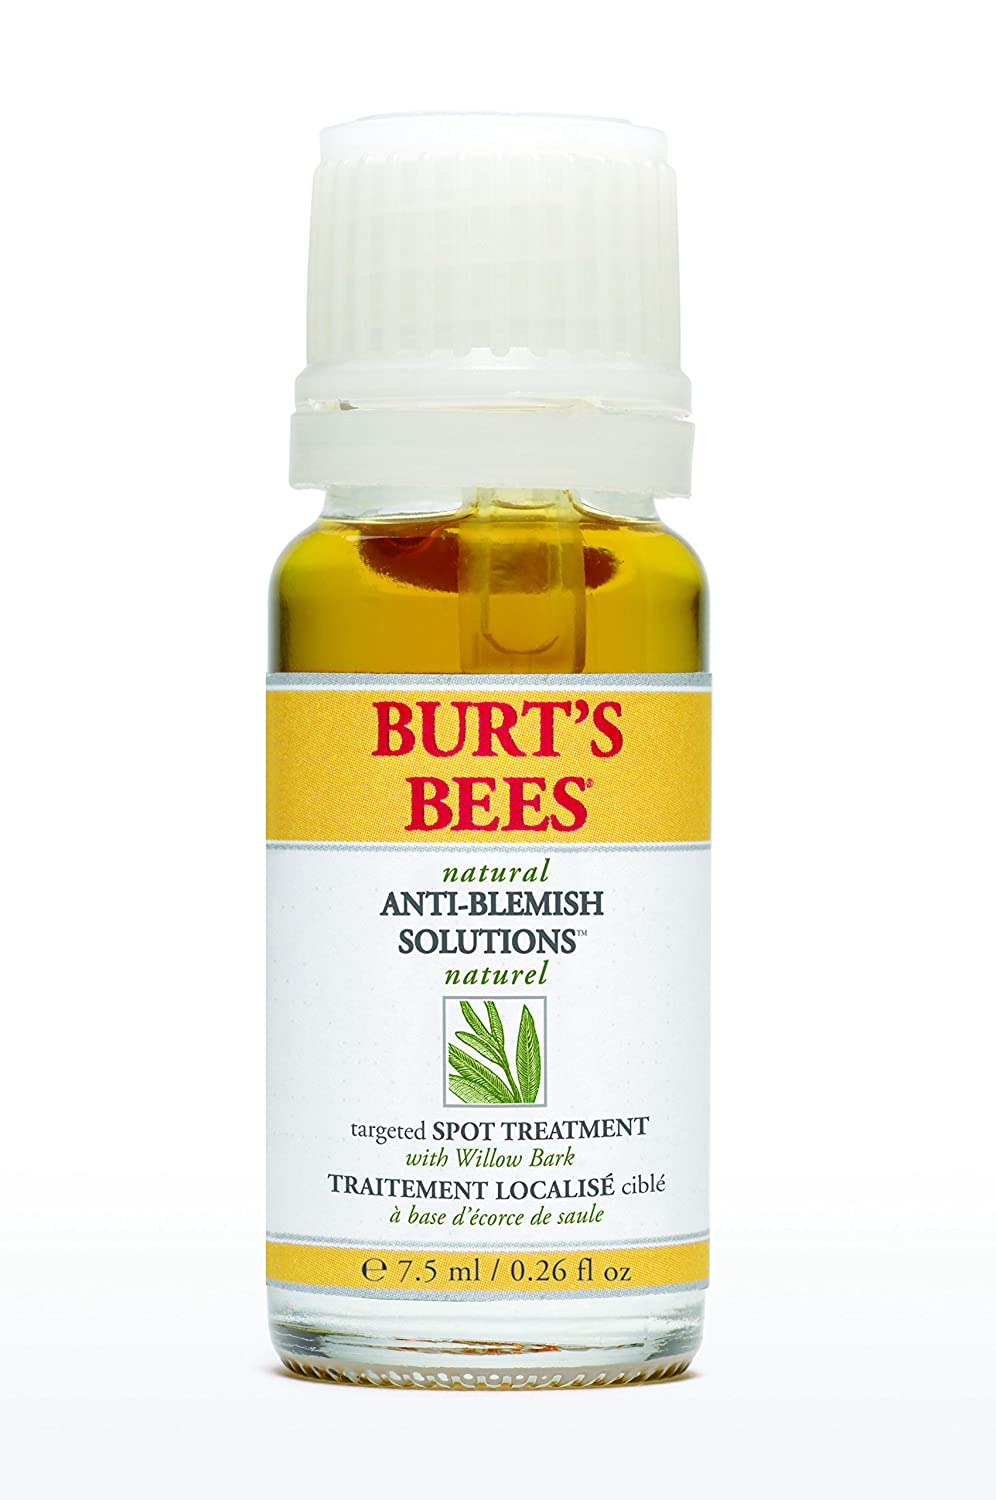 Burt's Bees Anti-Blemish Targeted Spot Treatment, 7.5ml Cbee Europe LTD 00173-11